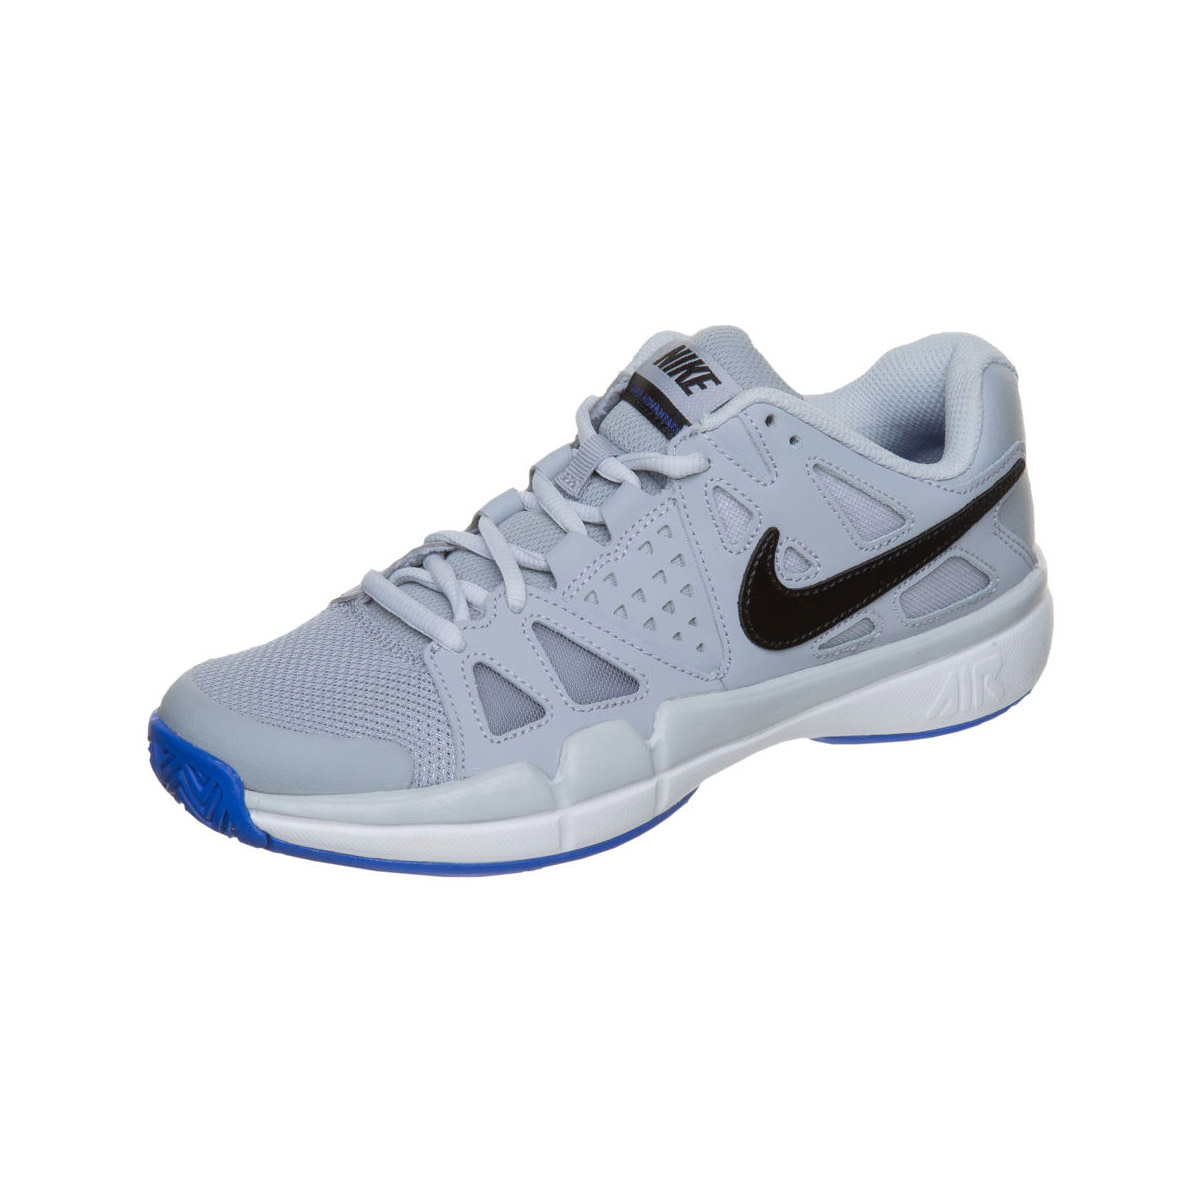 Nike Air Vapor Advantage Women s Shoes - Blue Tint - Peake ... b9407b01a